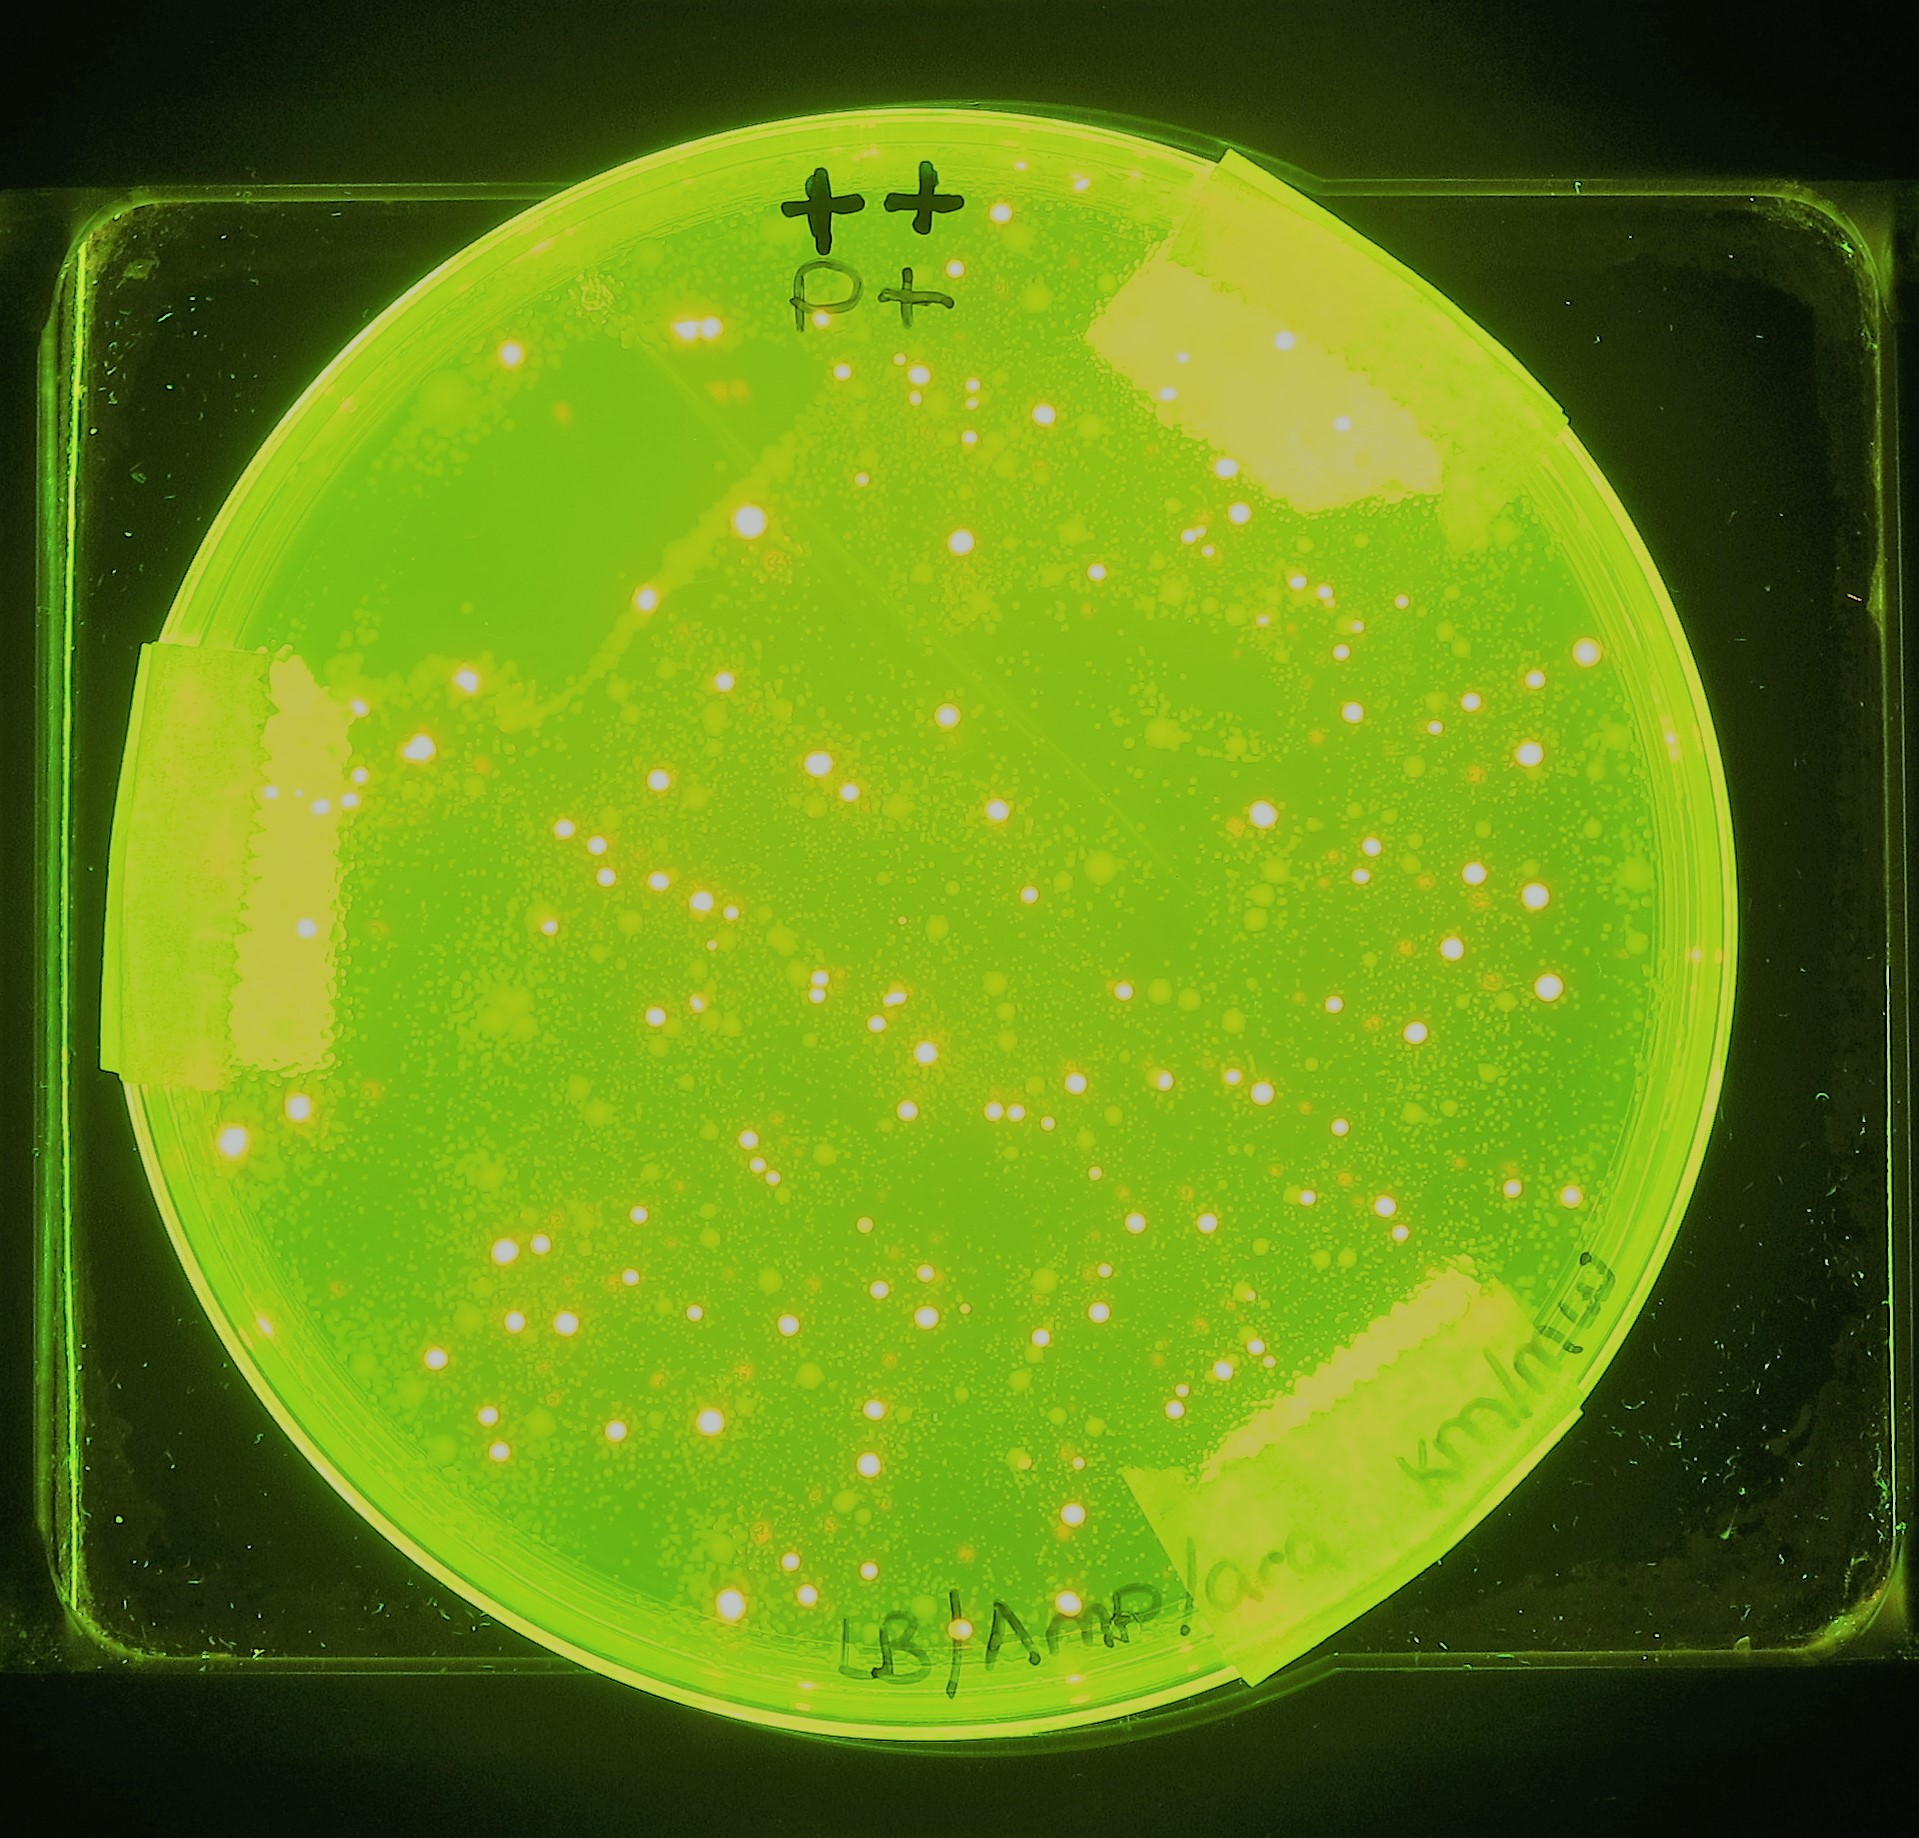 transformed bacterial cells expresing rfp and fluorescing